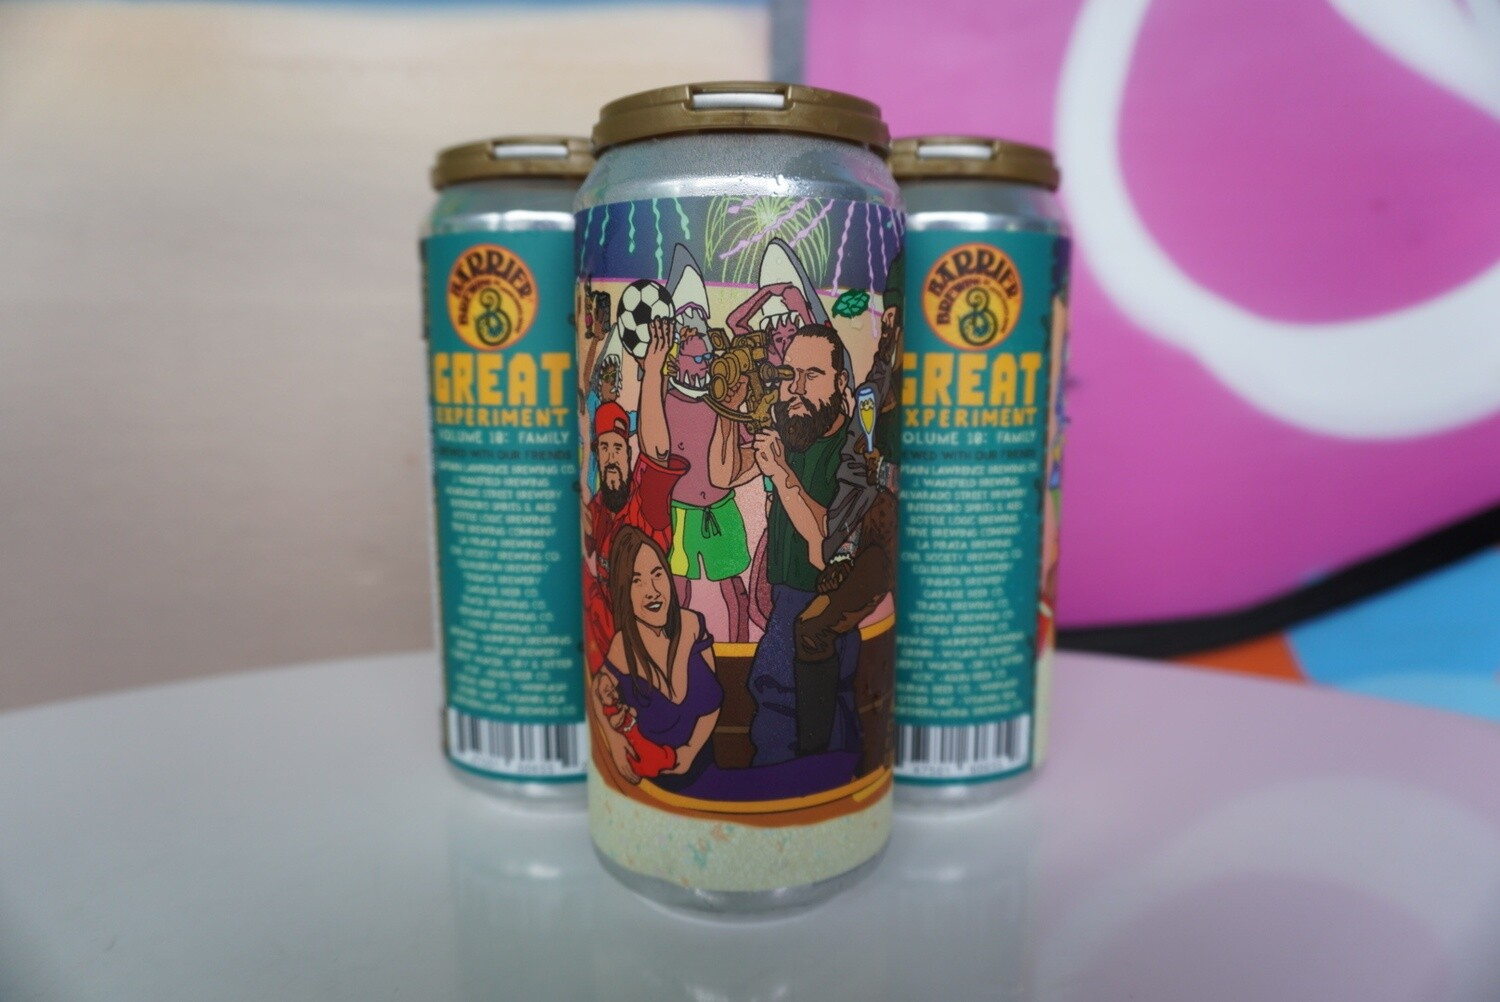 Barrier Brewing - The Great Experiment Volume 10  - New England IPA - 7.4% ABV - 4 Pack